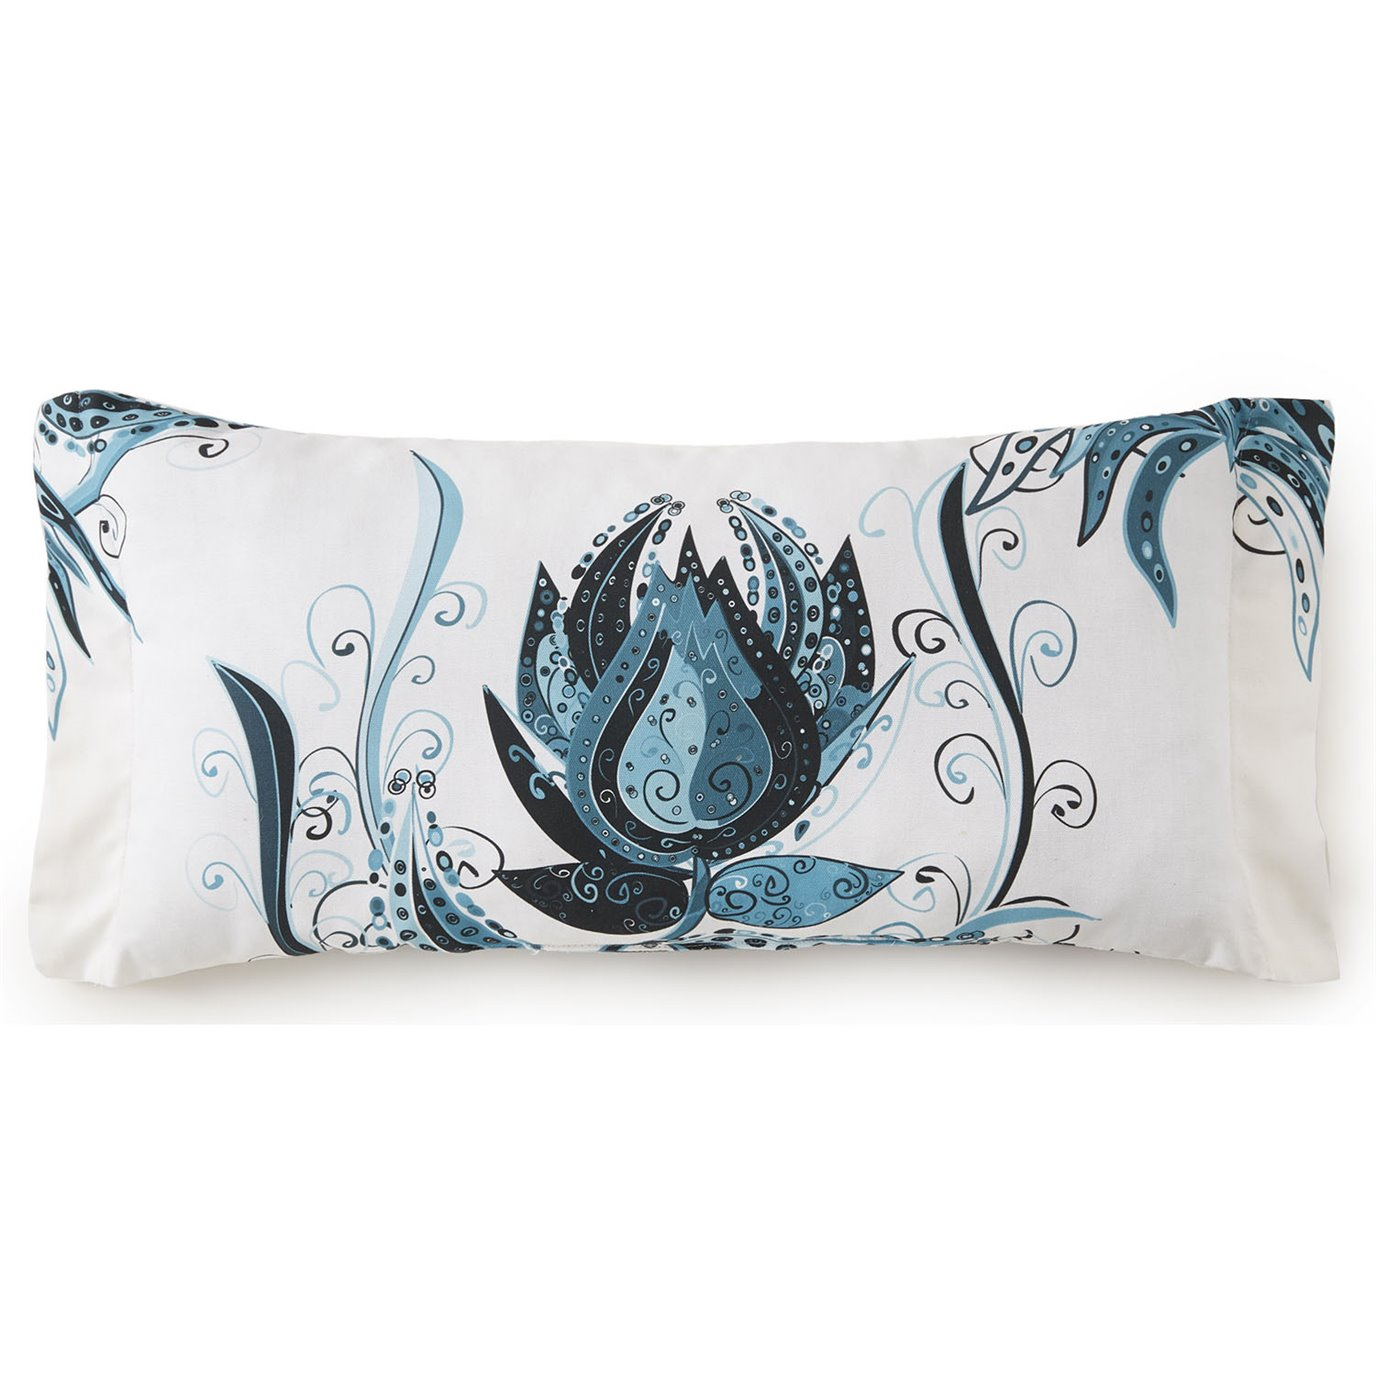 Tropical Bloom Long Rectangle Cushion - White Background, Blue Print